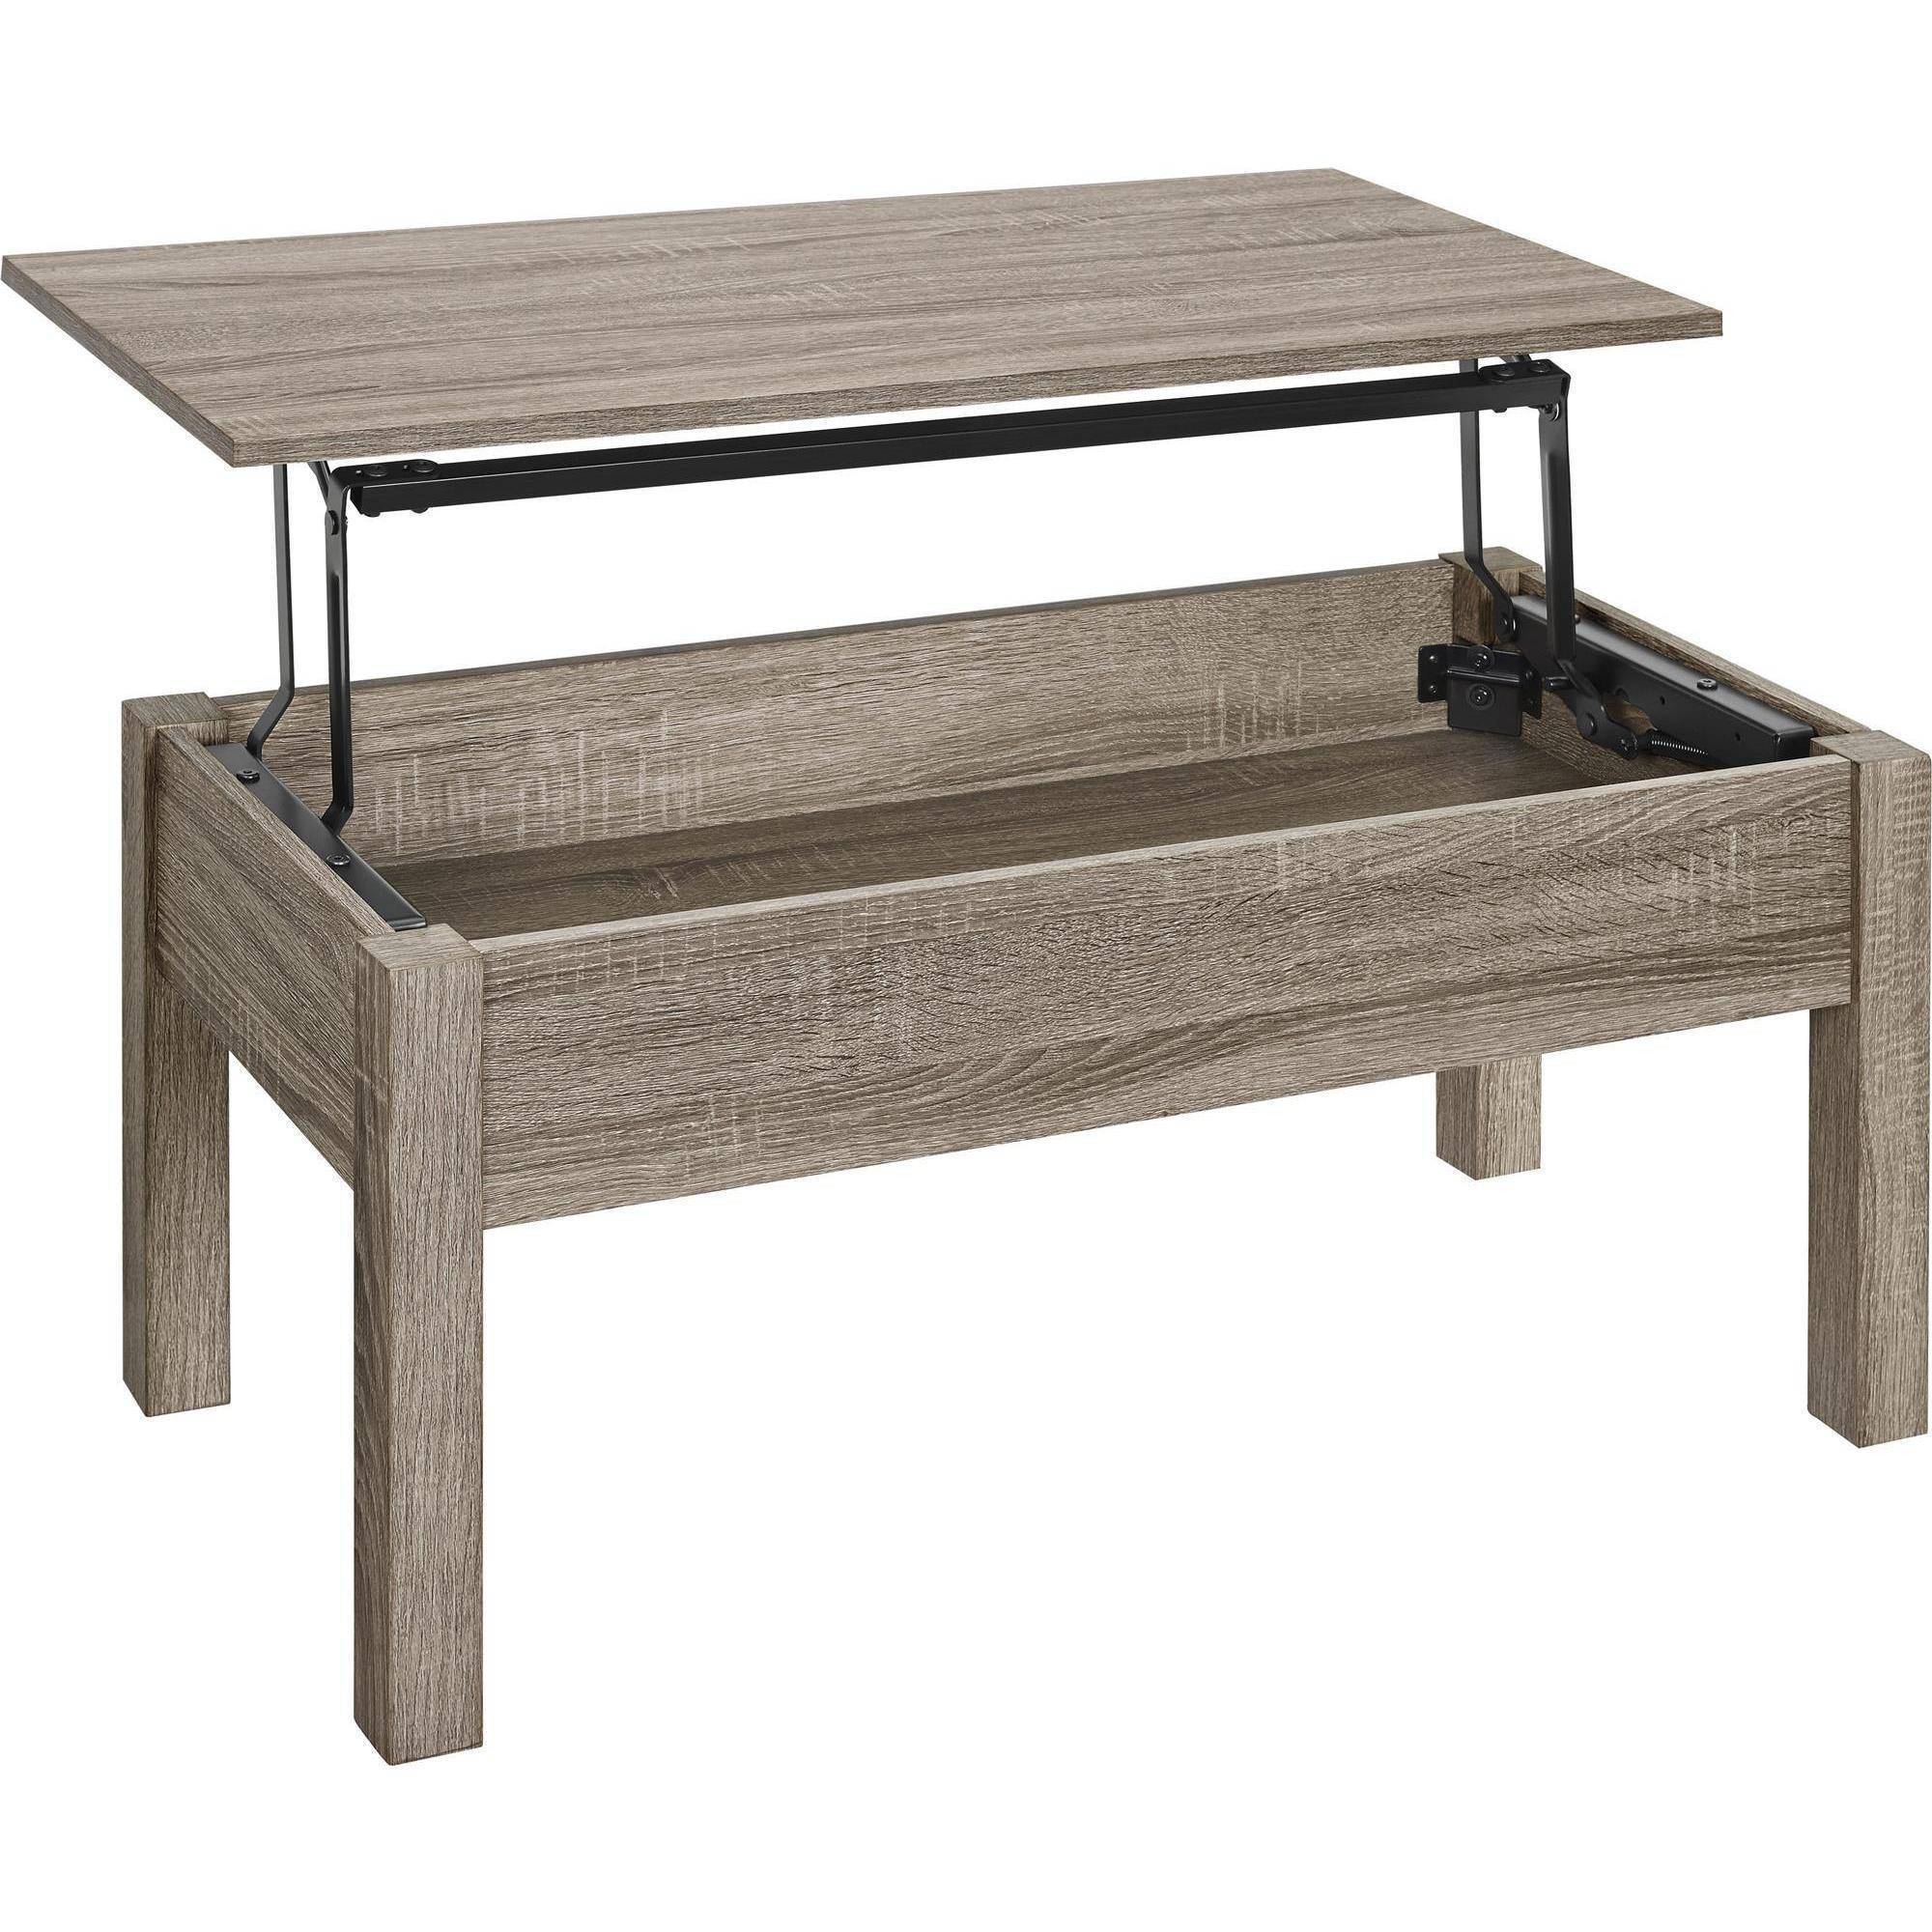 Mainstays Lift-Top Coffee Table, Multiple Colors - Walmart with regard to Cheap Lift Top Coffee Tables (Image 17 of 30)